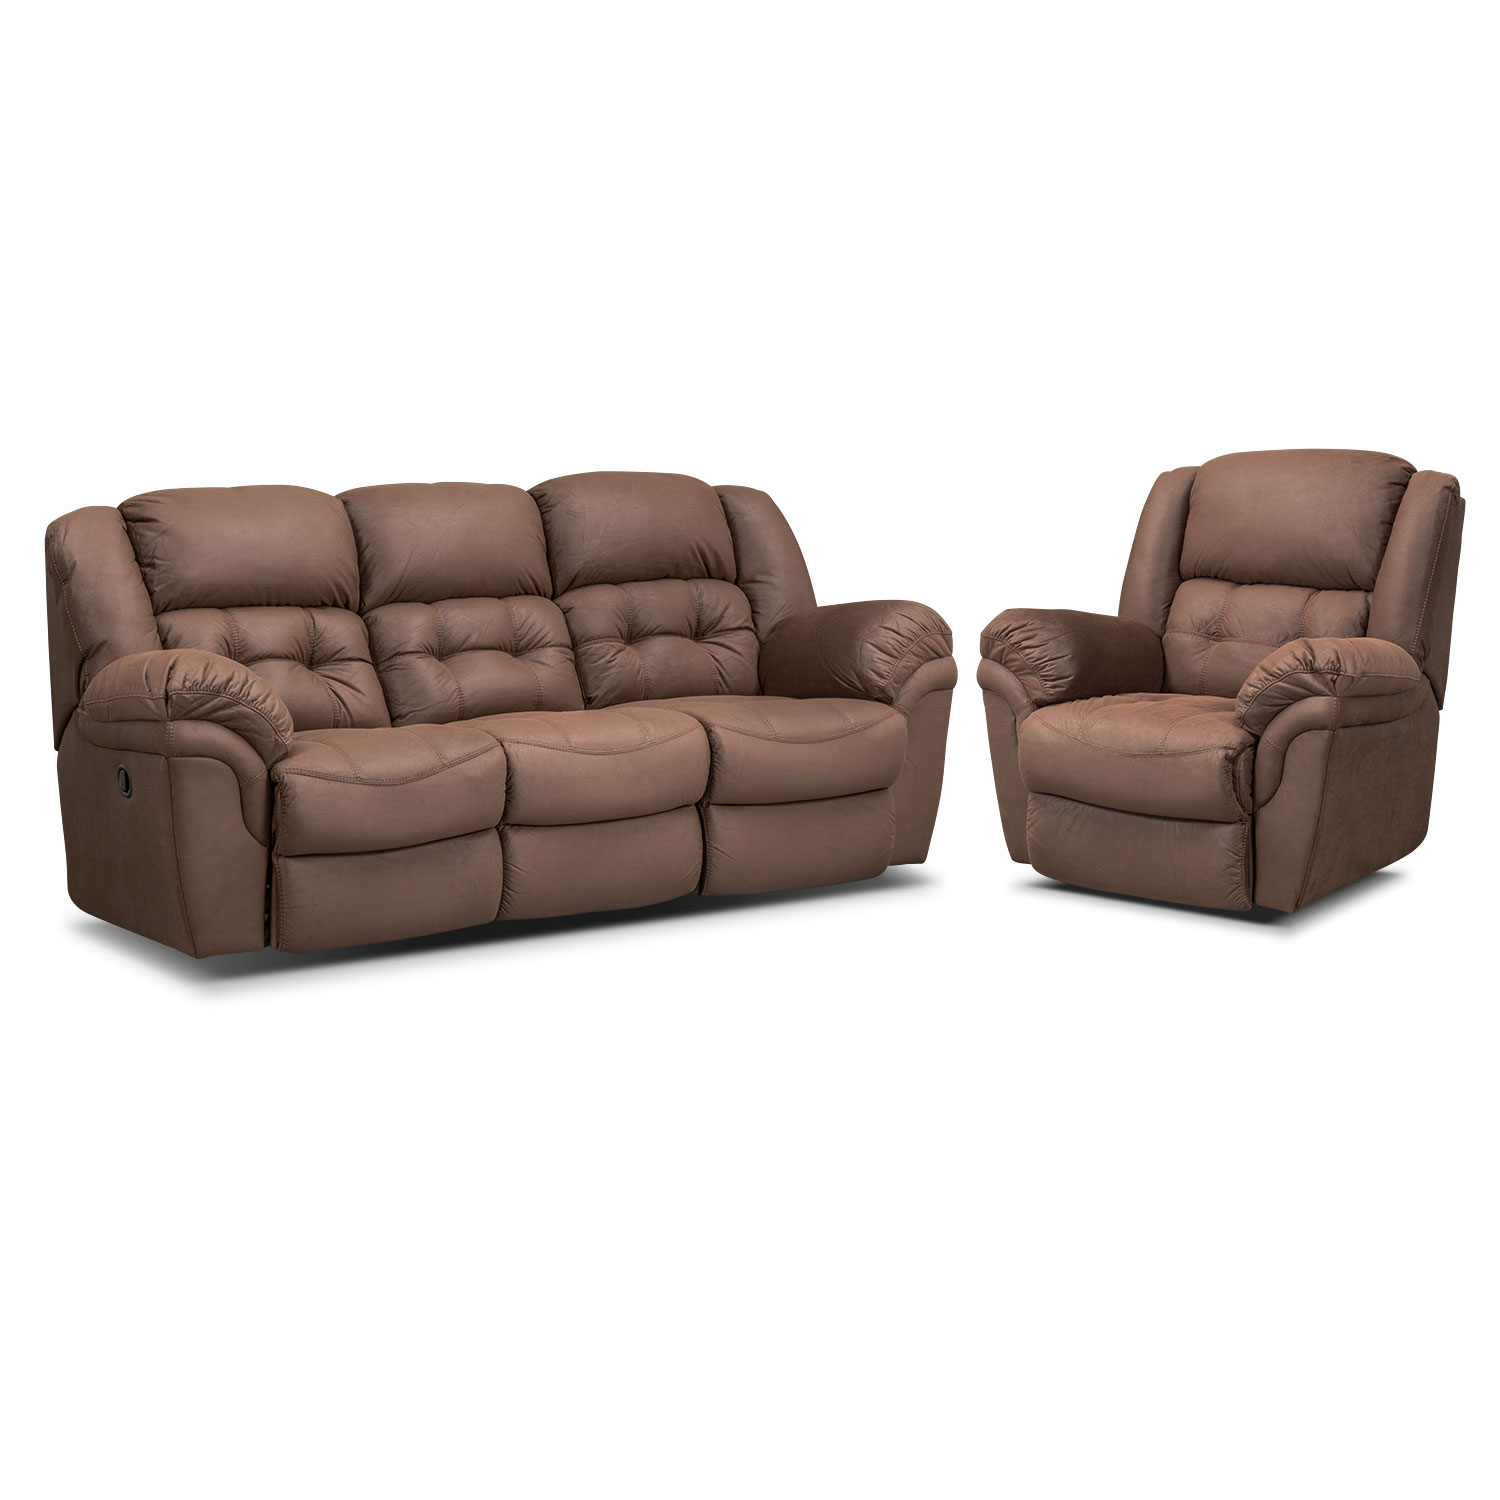 Living Room Furniture - Lancer Manual Reclining Sofa and Glider Recliner Set - Chocolate